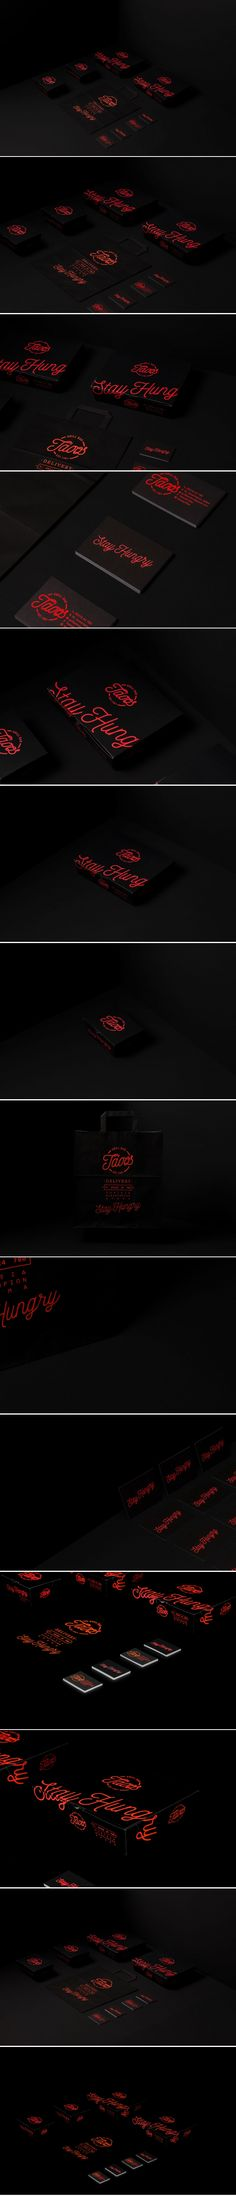 Brand identity and package design using Pantone Neon Colors for Tasos Grill Bar in Drama. A project by Artware